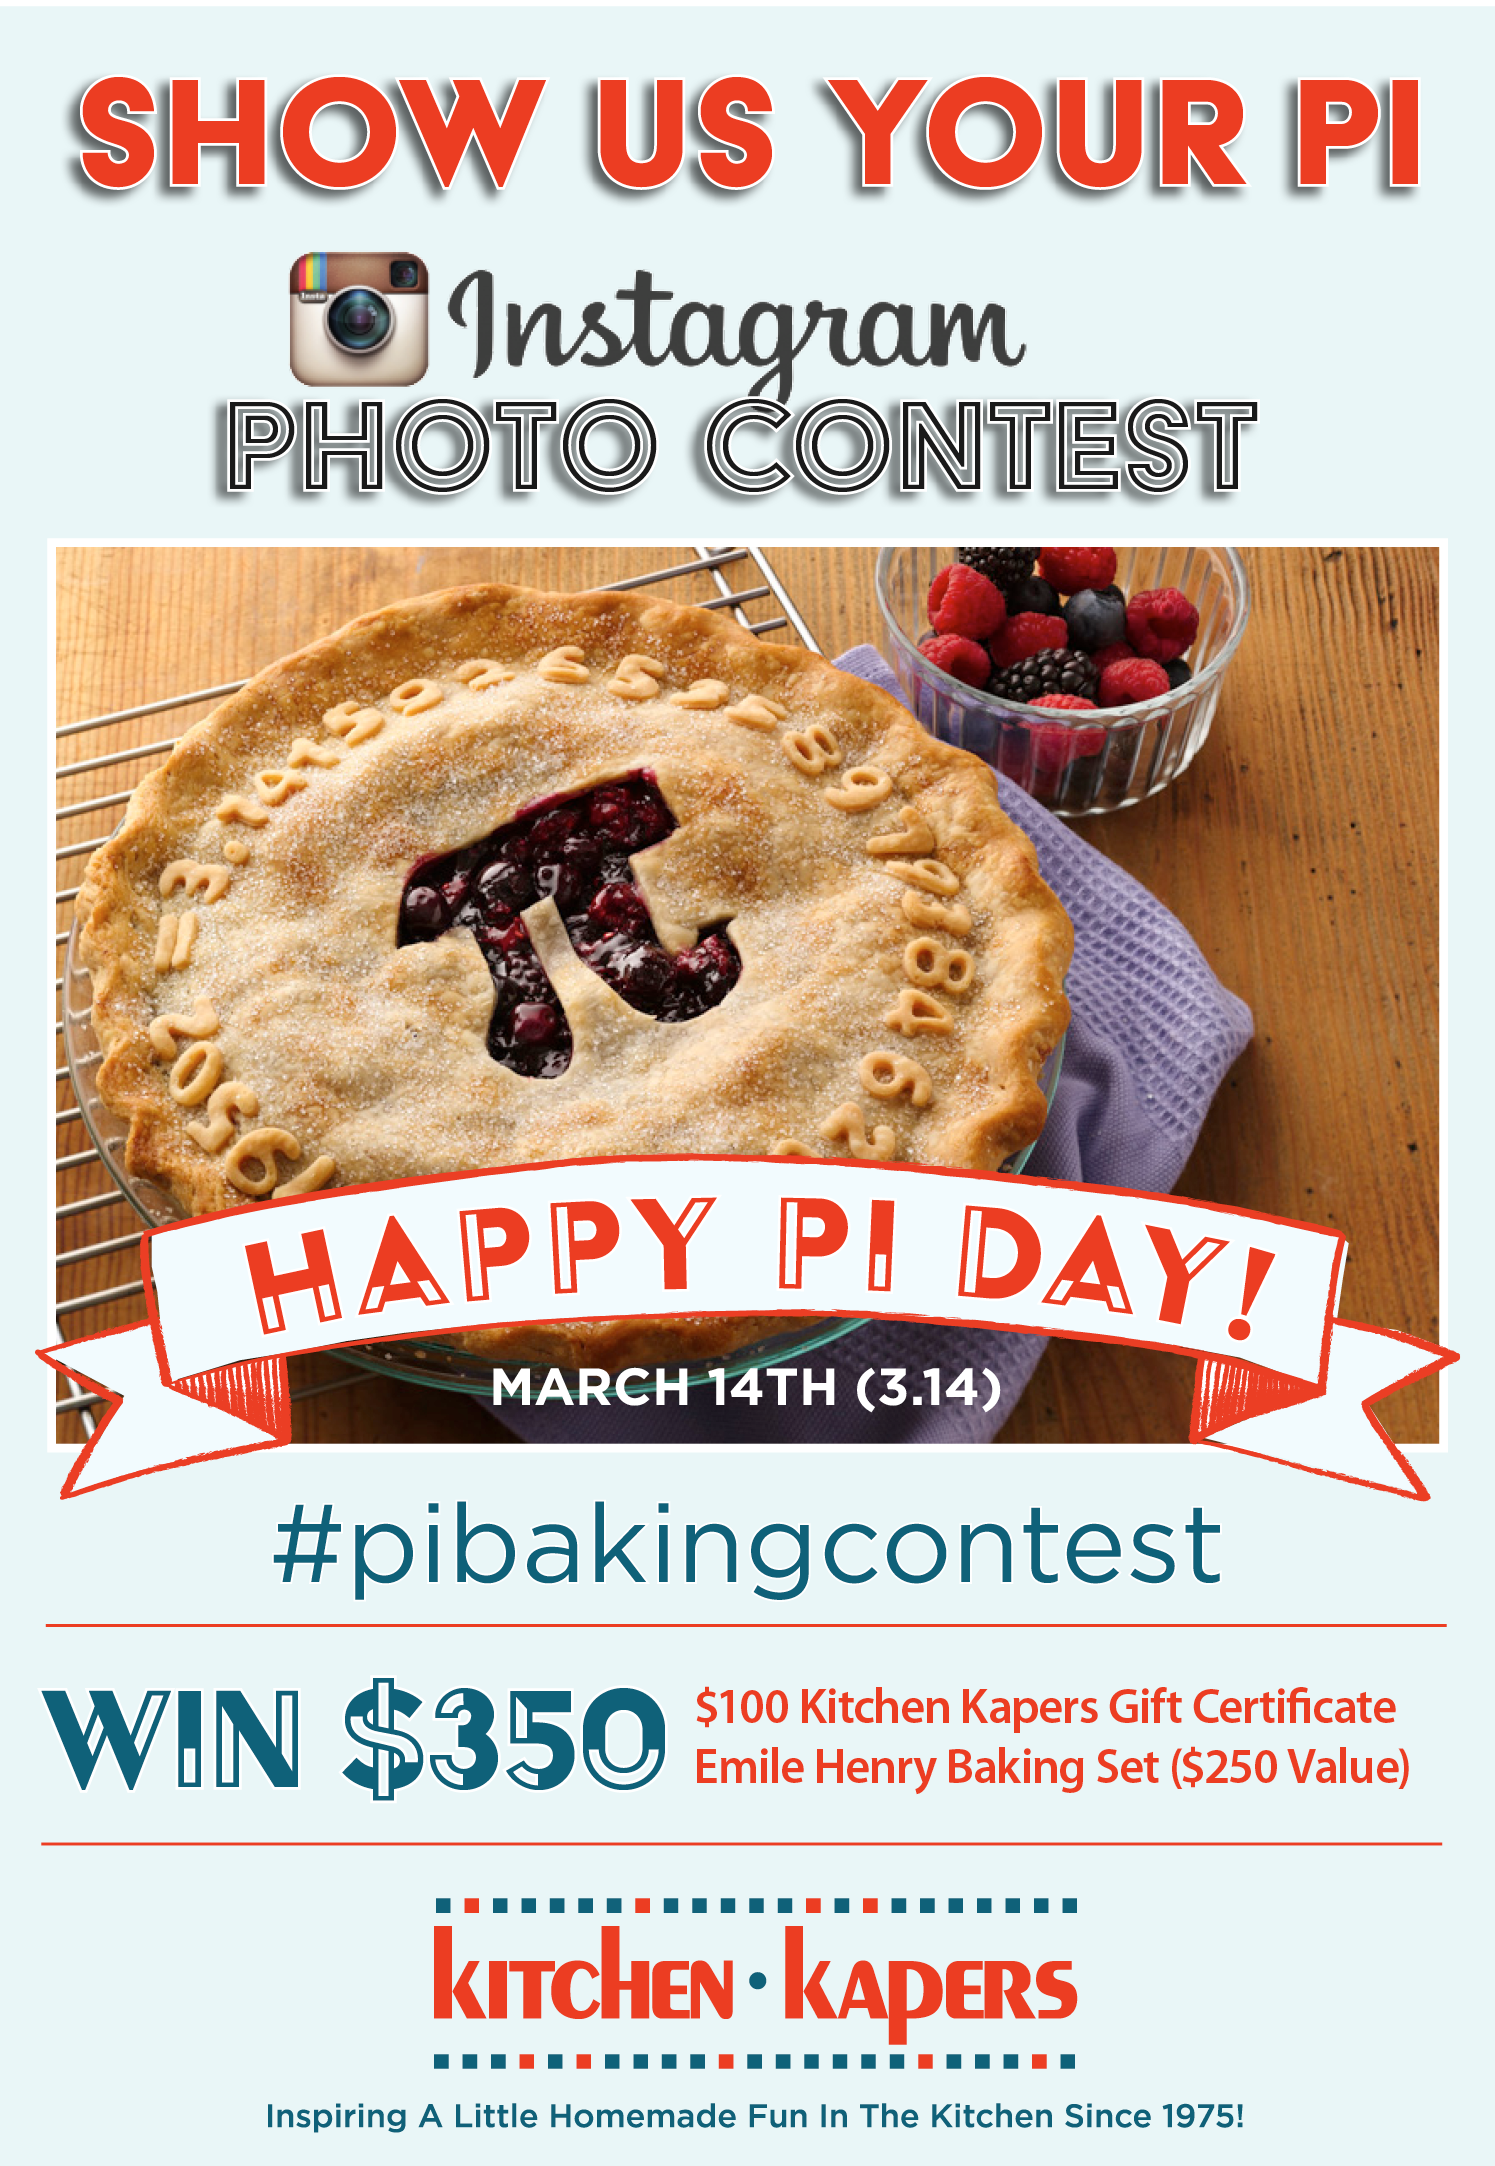 PiBakingContest Instagram Contest! Enter now through 3.14.17